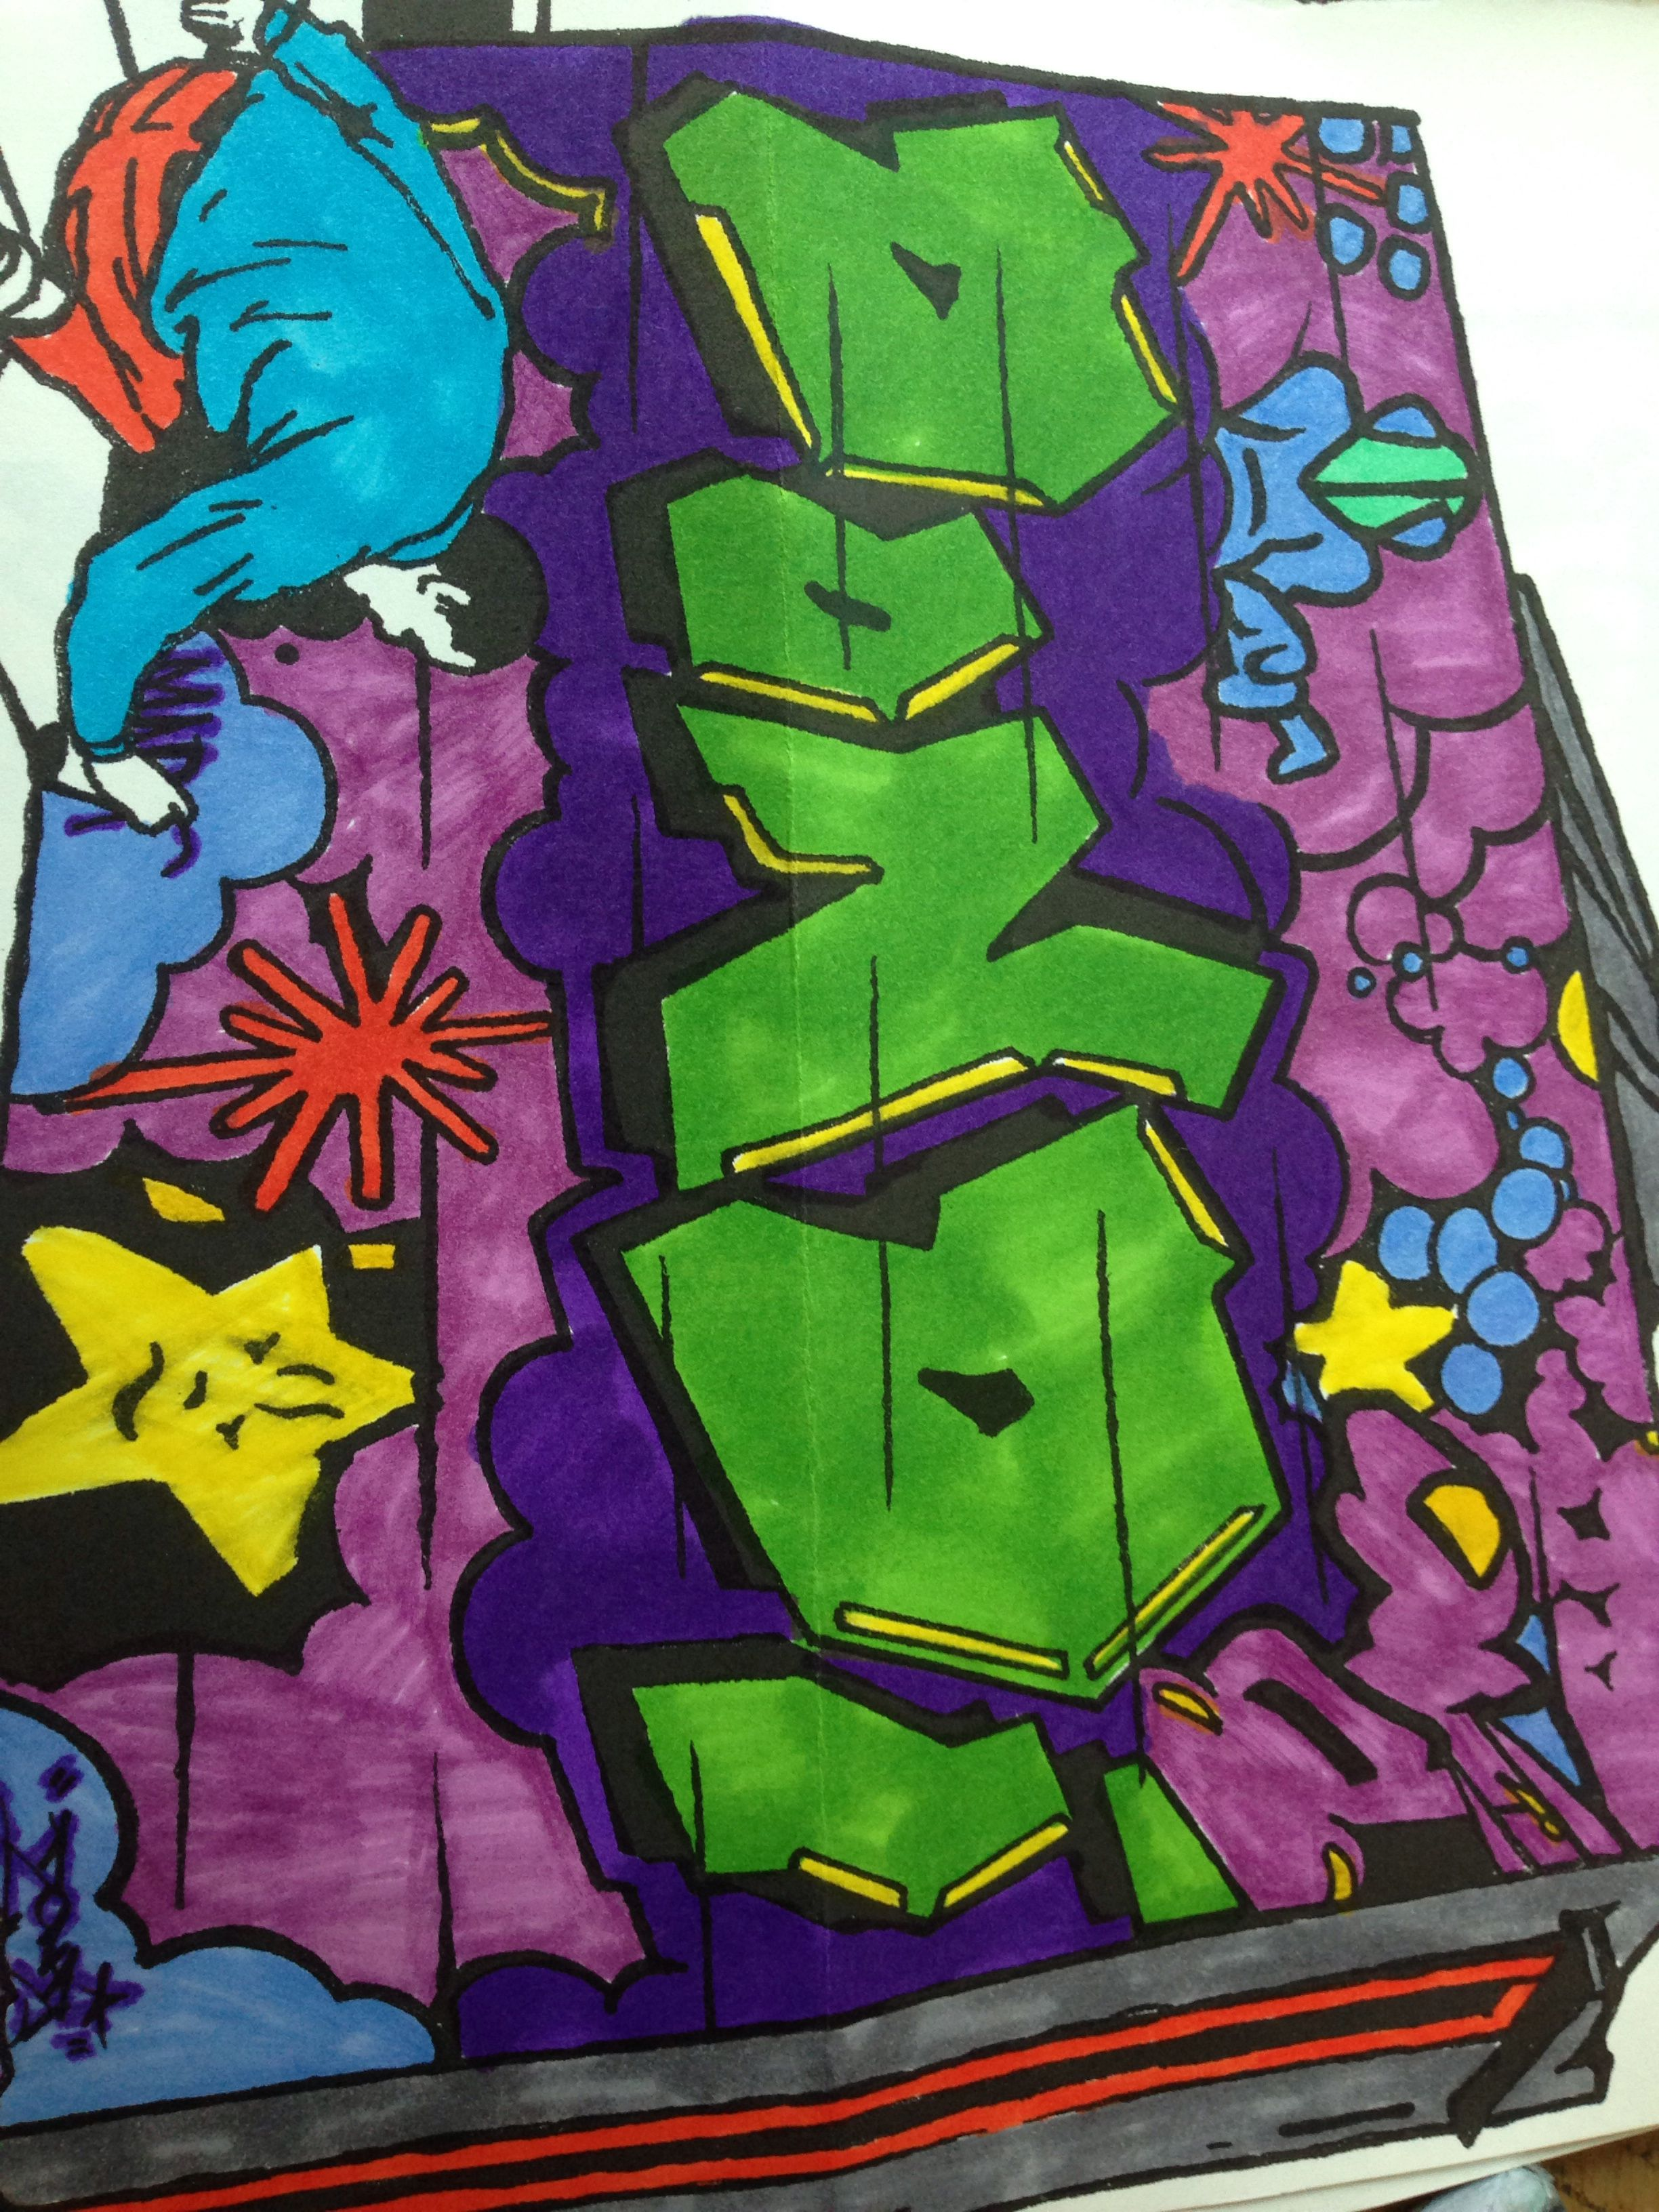 Graffiti coloring book | My coloring pages | Pinterest